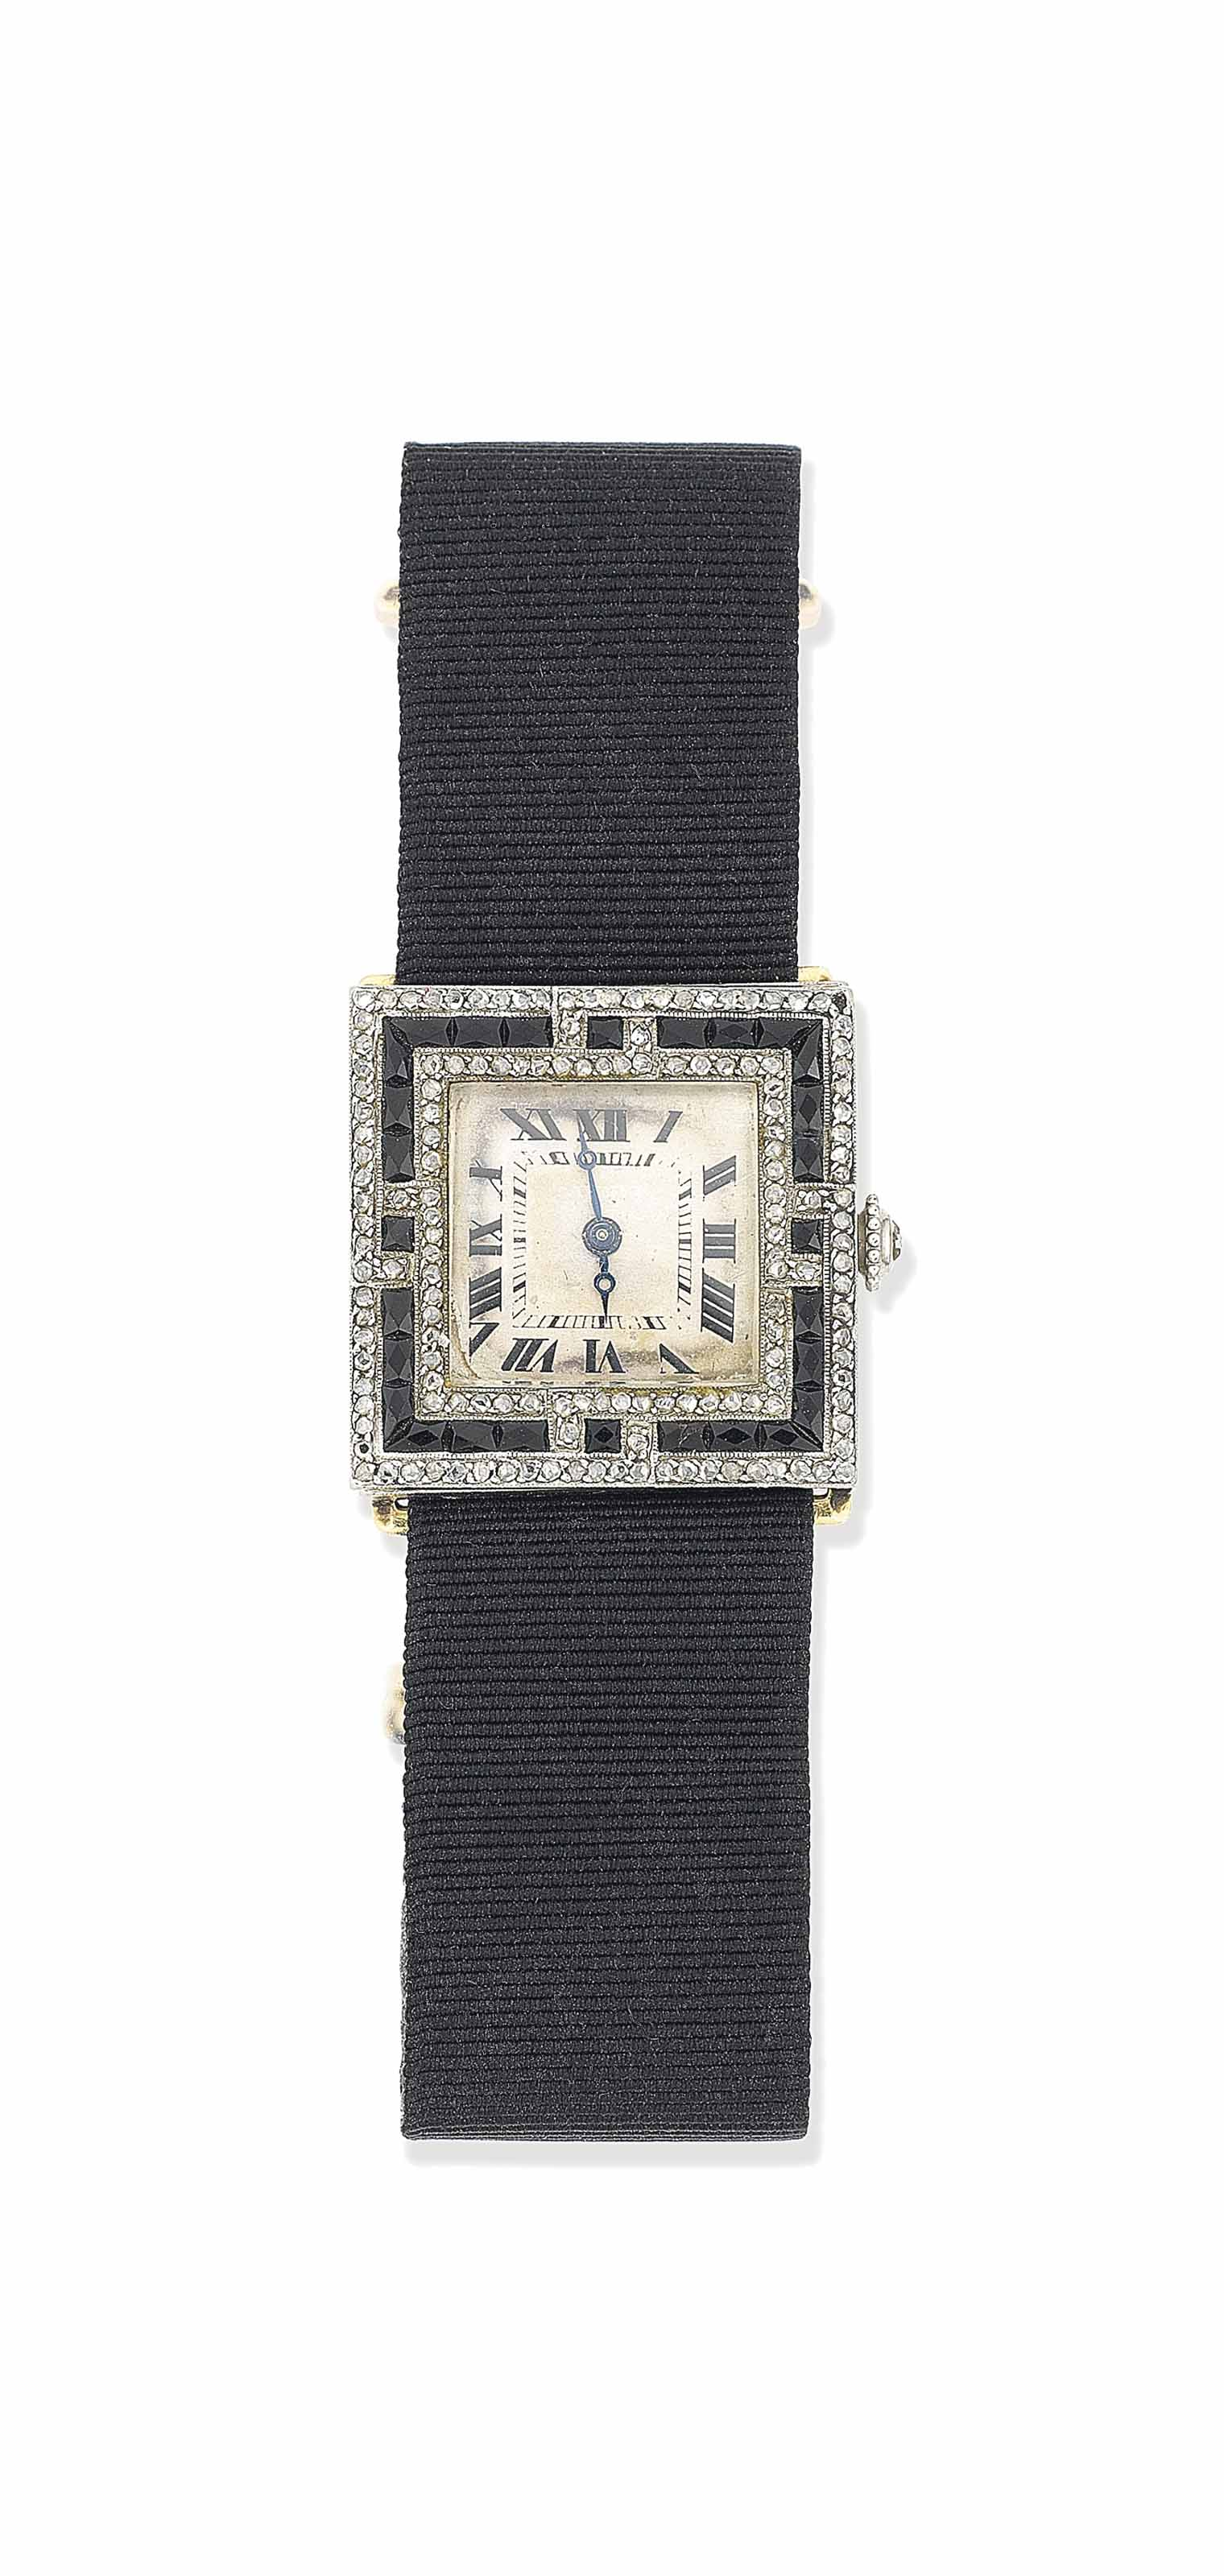 AN ART DECO ONYX AND DIAMOND WRISTWATCH, BY CARTIER